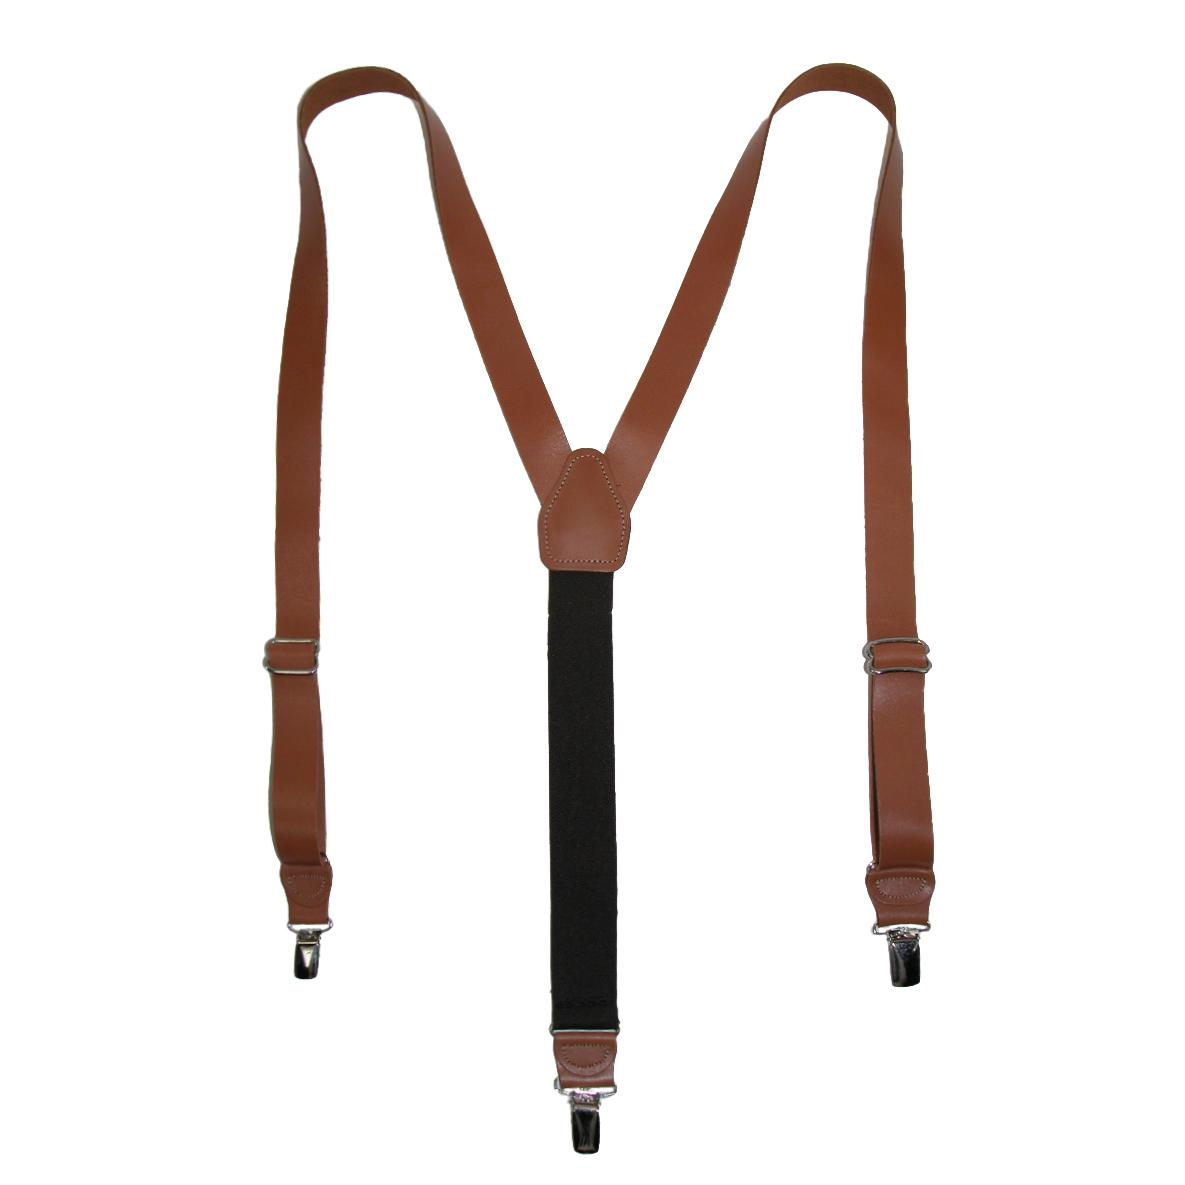 CTM_Men's_Leather_Clip-End_1_Inch_Suspenders_-_Tan_one_size